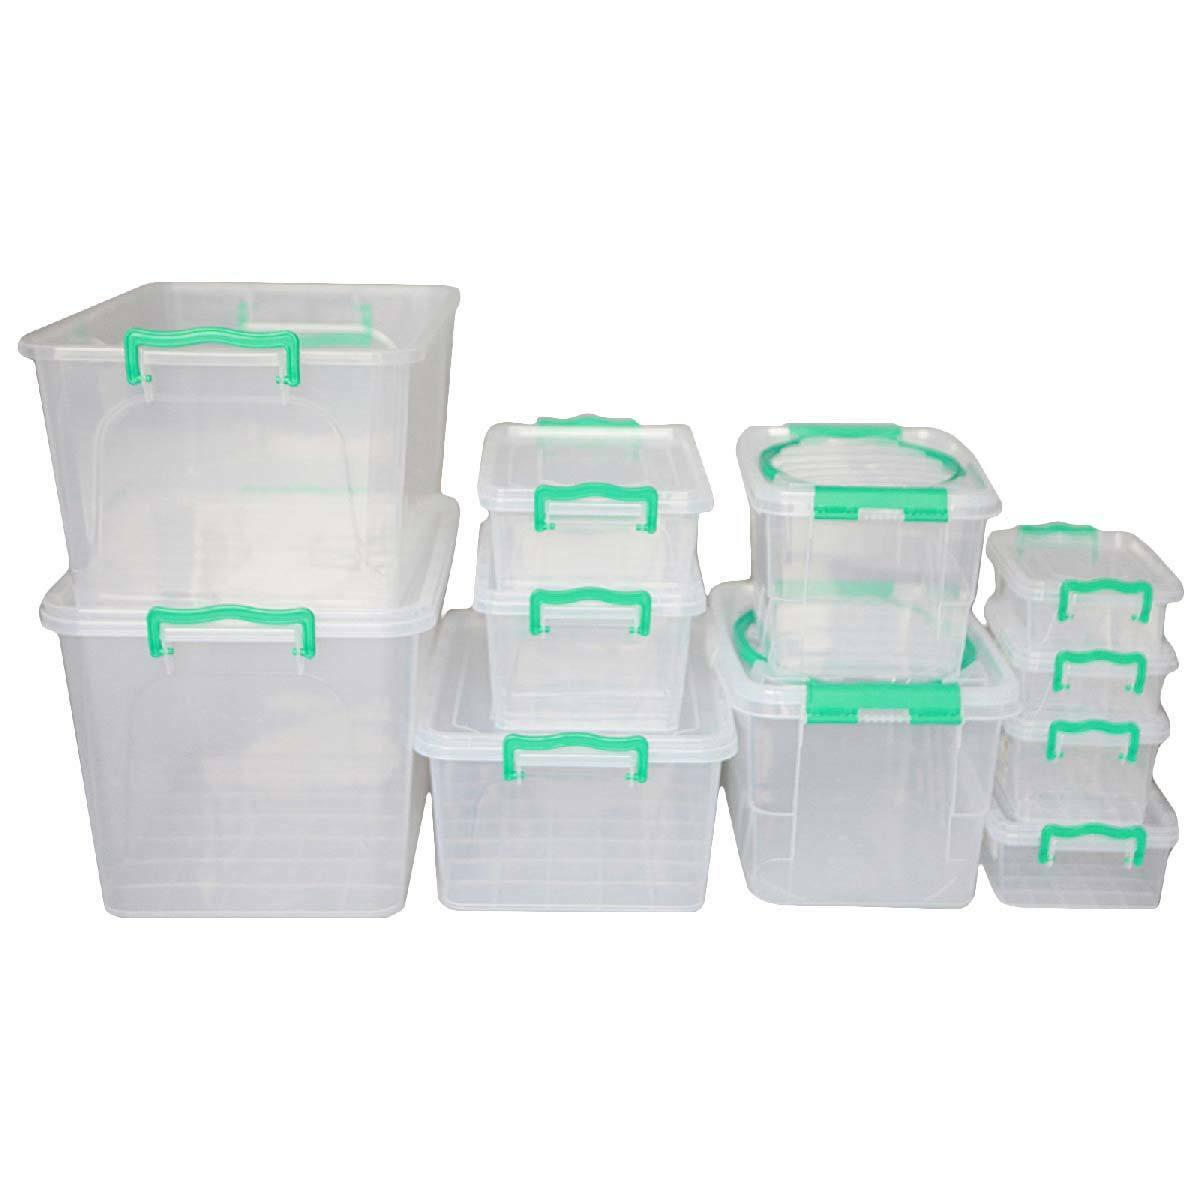 Durchsichtige Box Storage Box Transparent Box Plastic Box Klappbox Plastic 1 30l Ebay